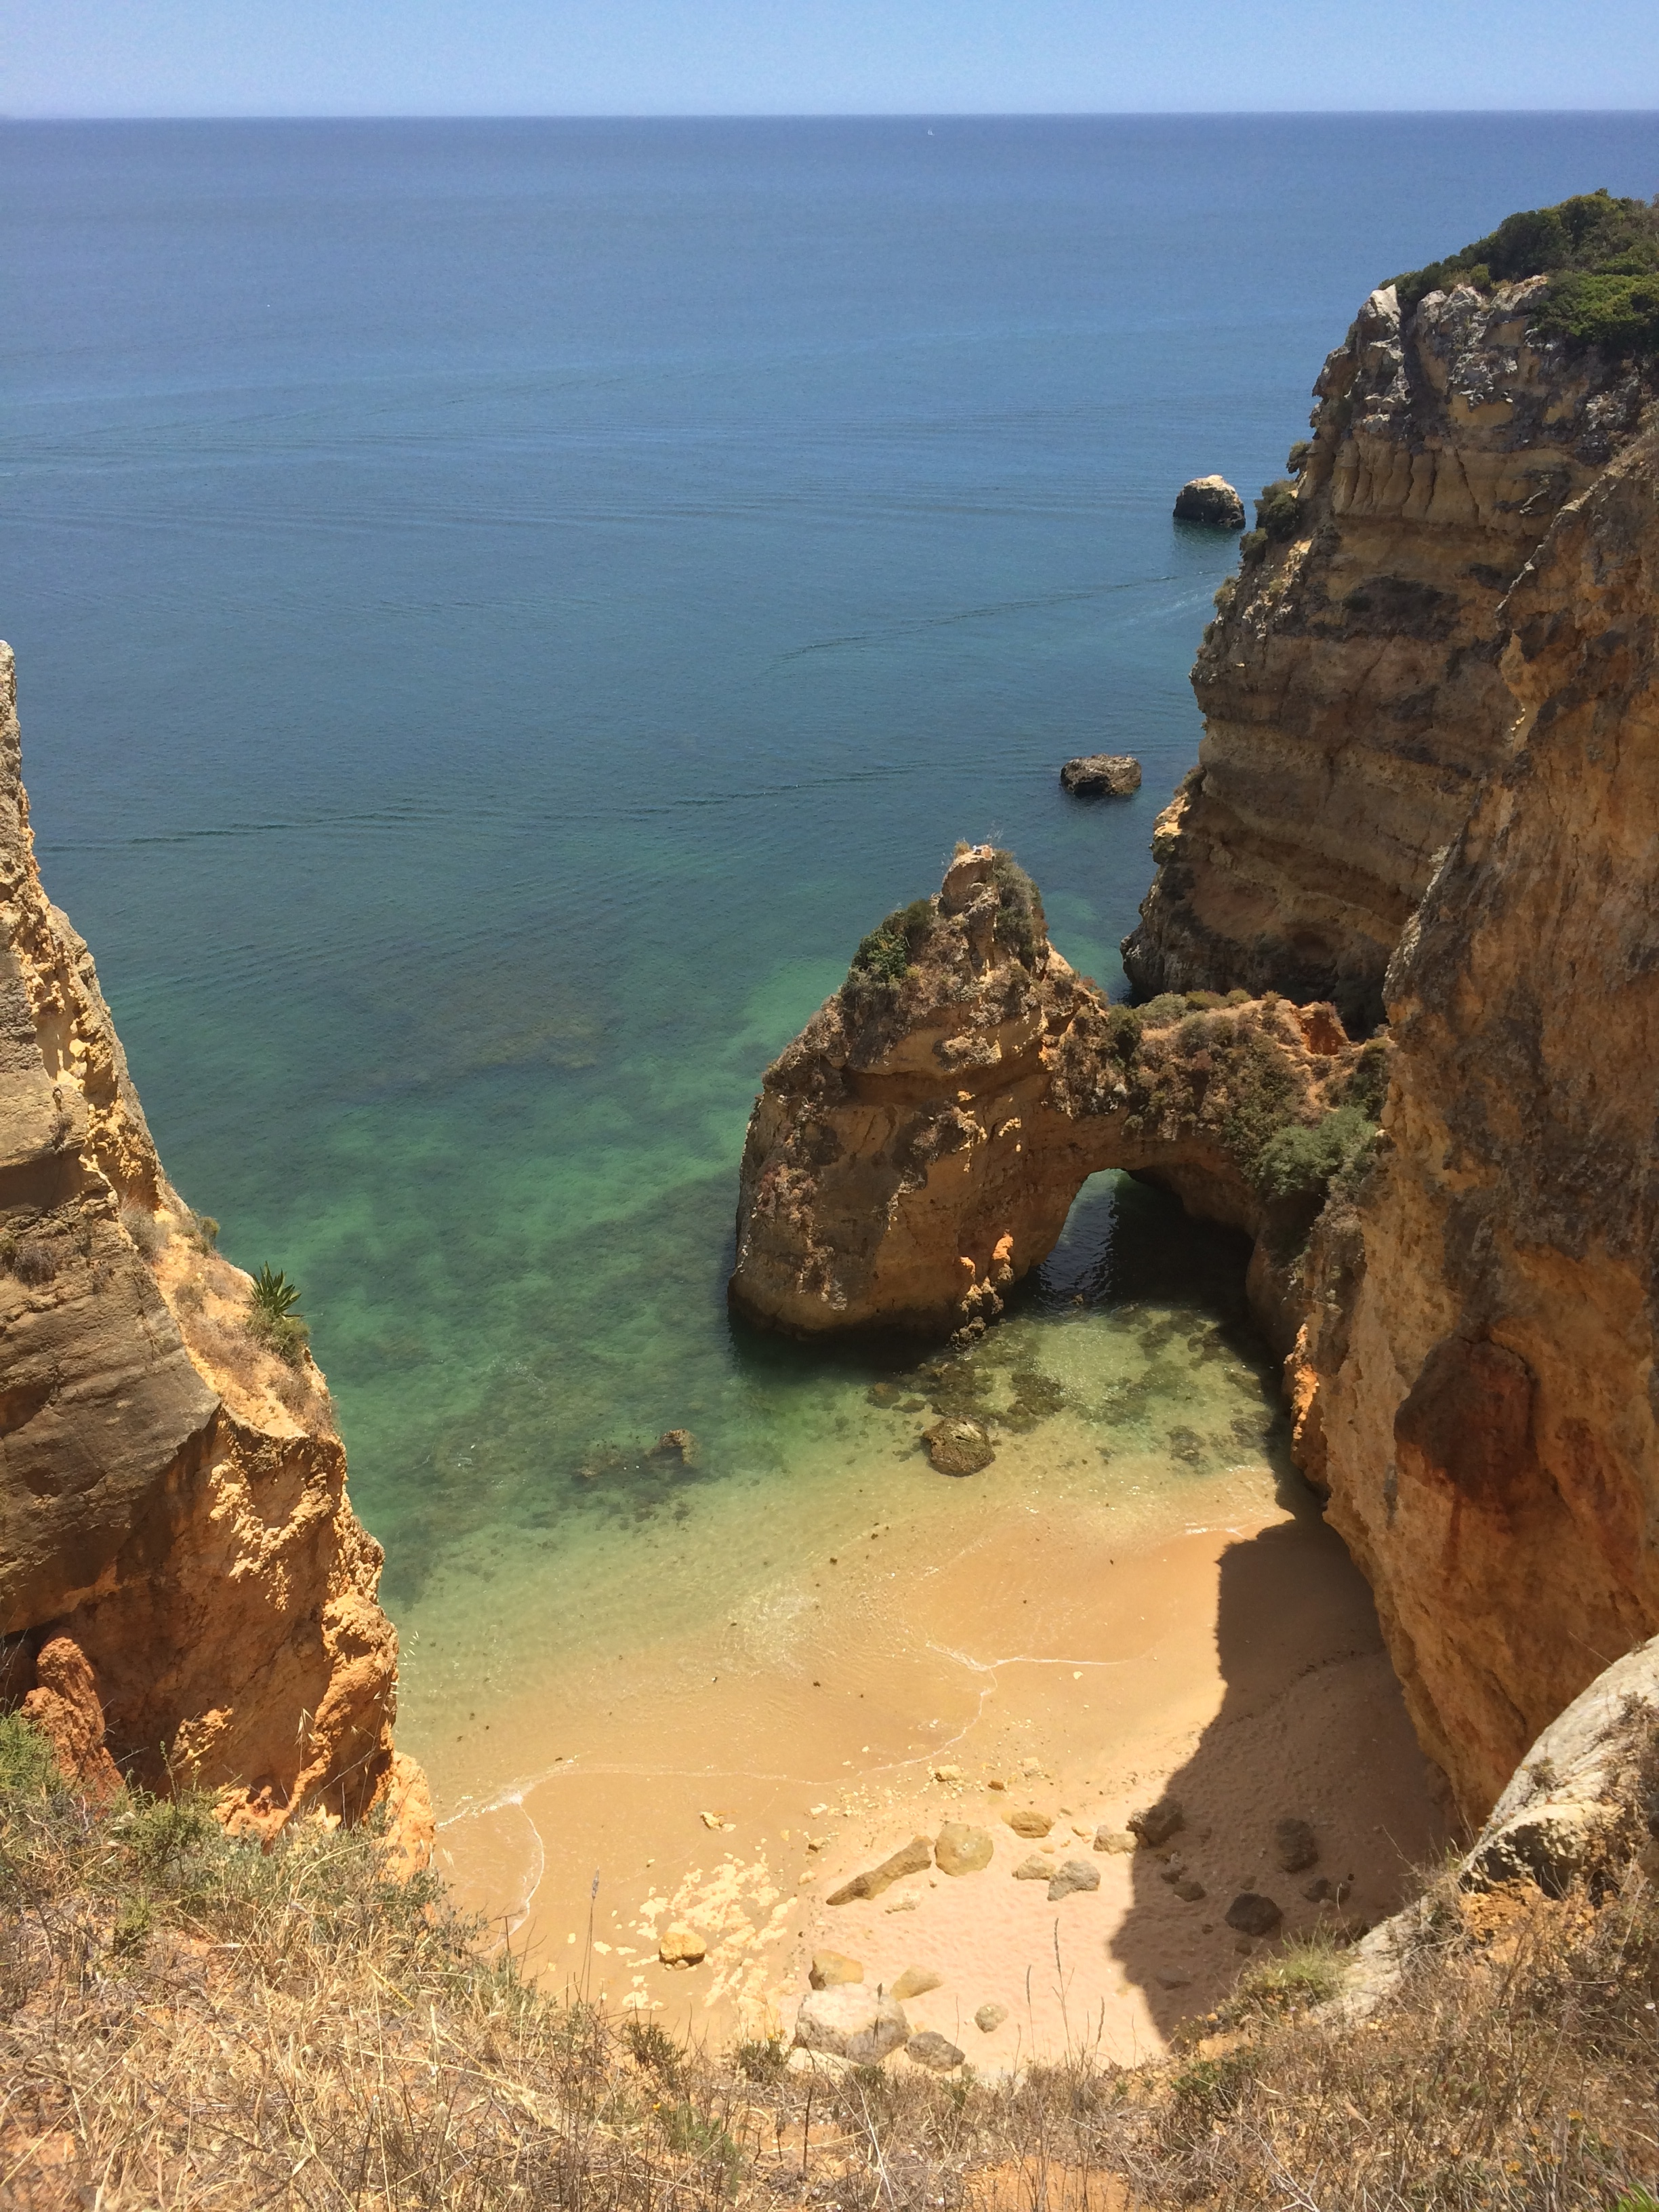 One example of the many secluded beaches. Such a tease, all you can do is look at it.